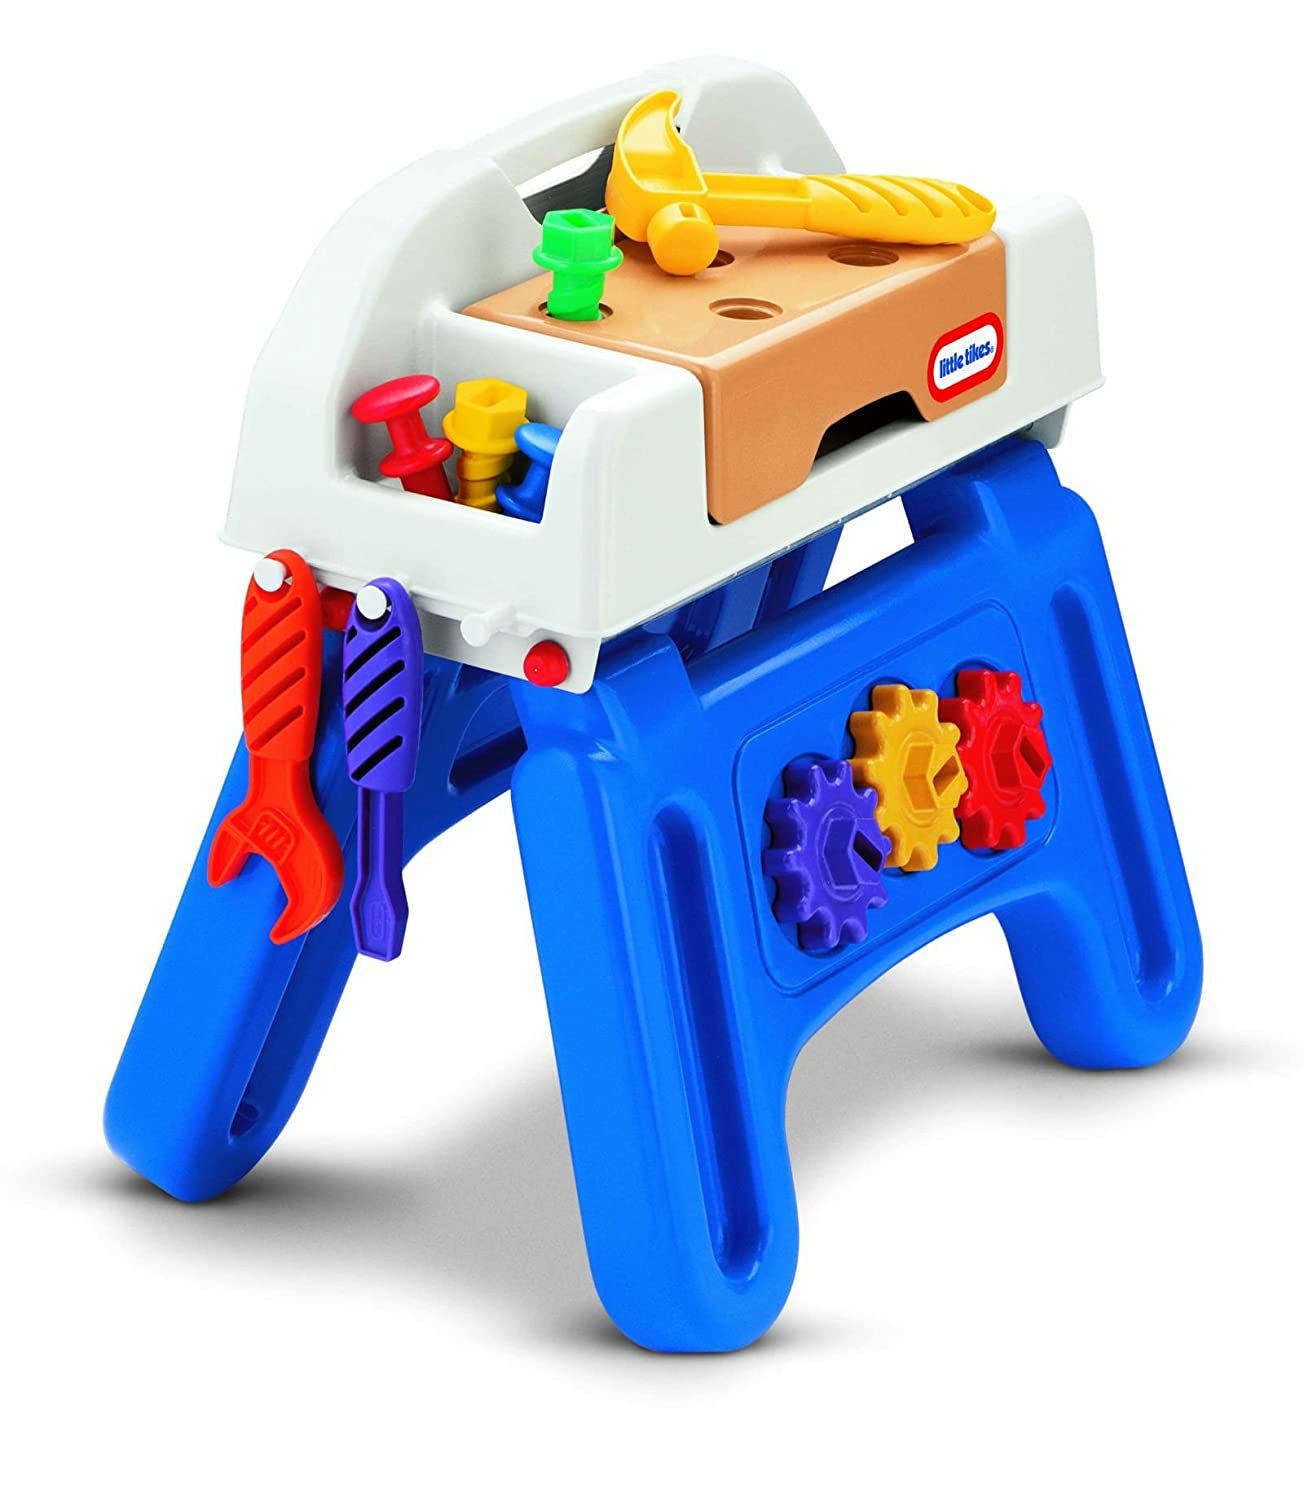 Little Tikes Little Handiworker Workhorse Amazon Toys & Games